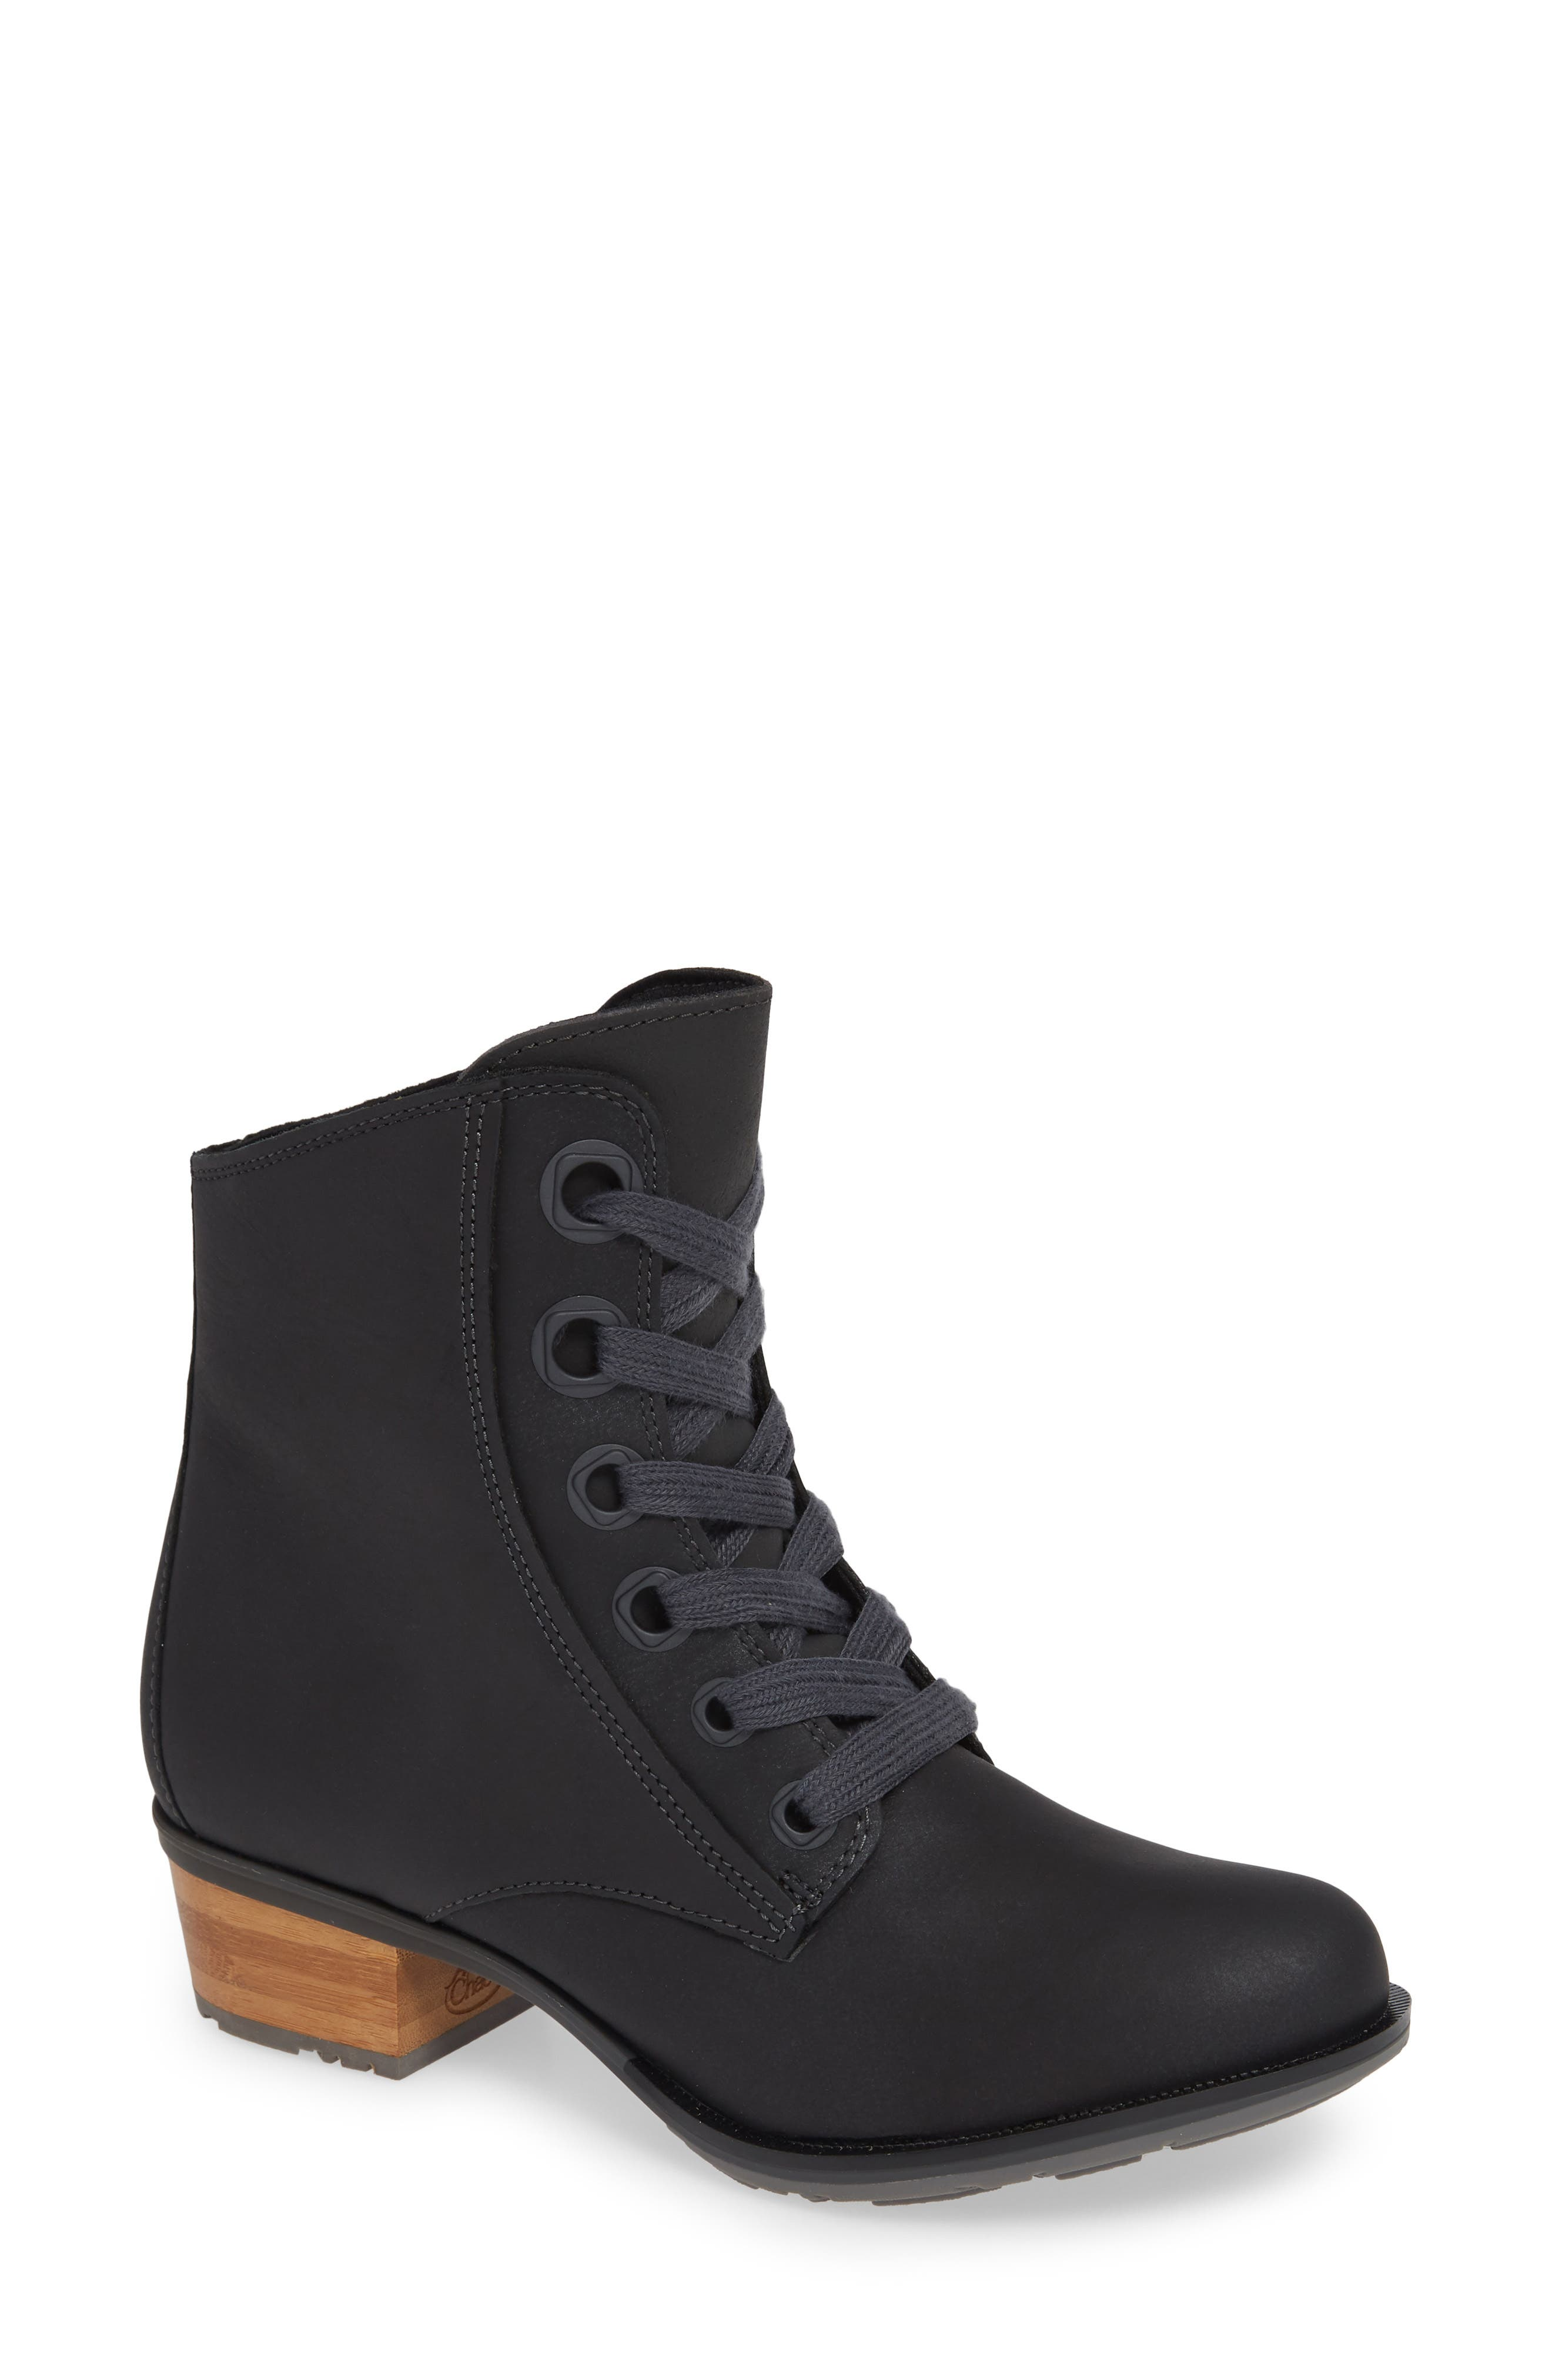 CHACO, Cataluna Waterproof Lace-Up Boot, Main thumbnail 1, color, BLACK LEATHER